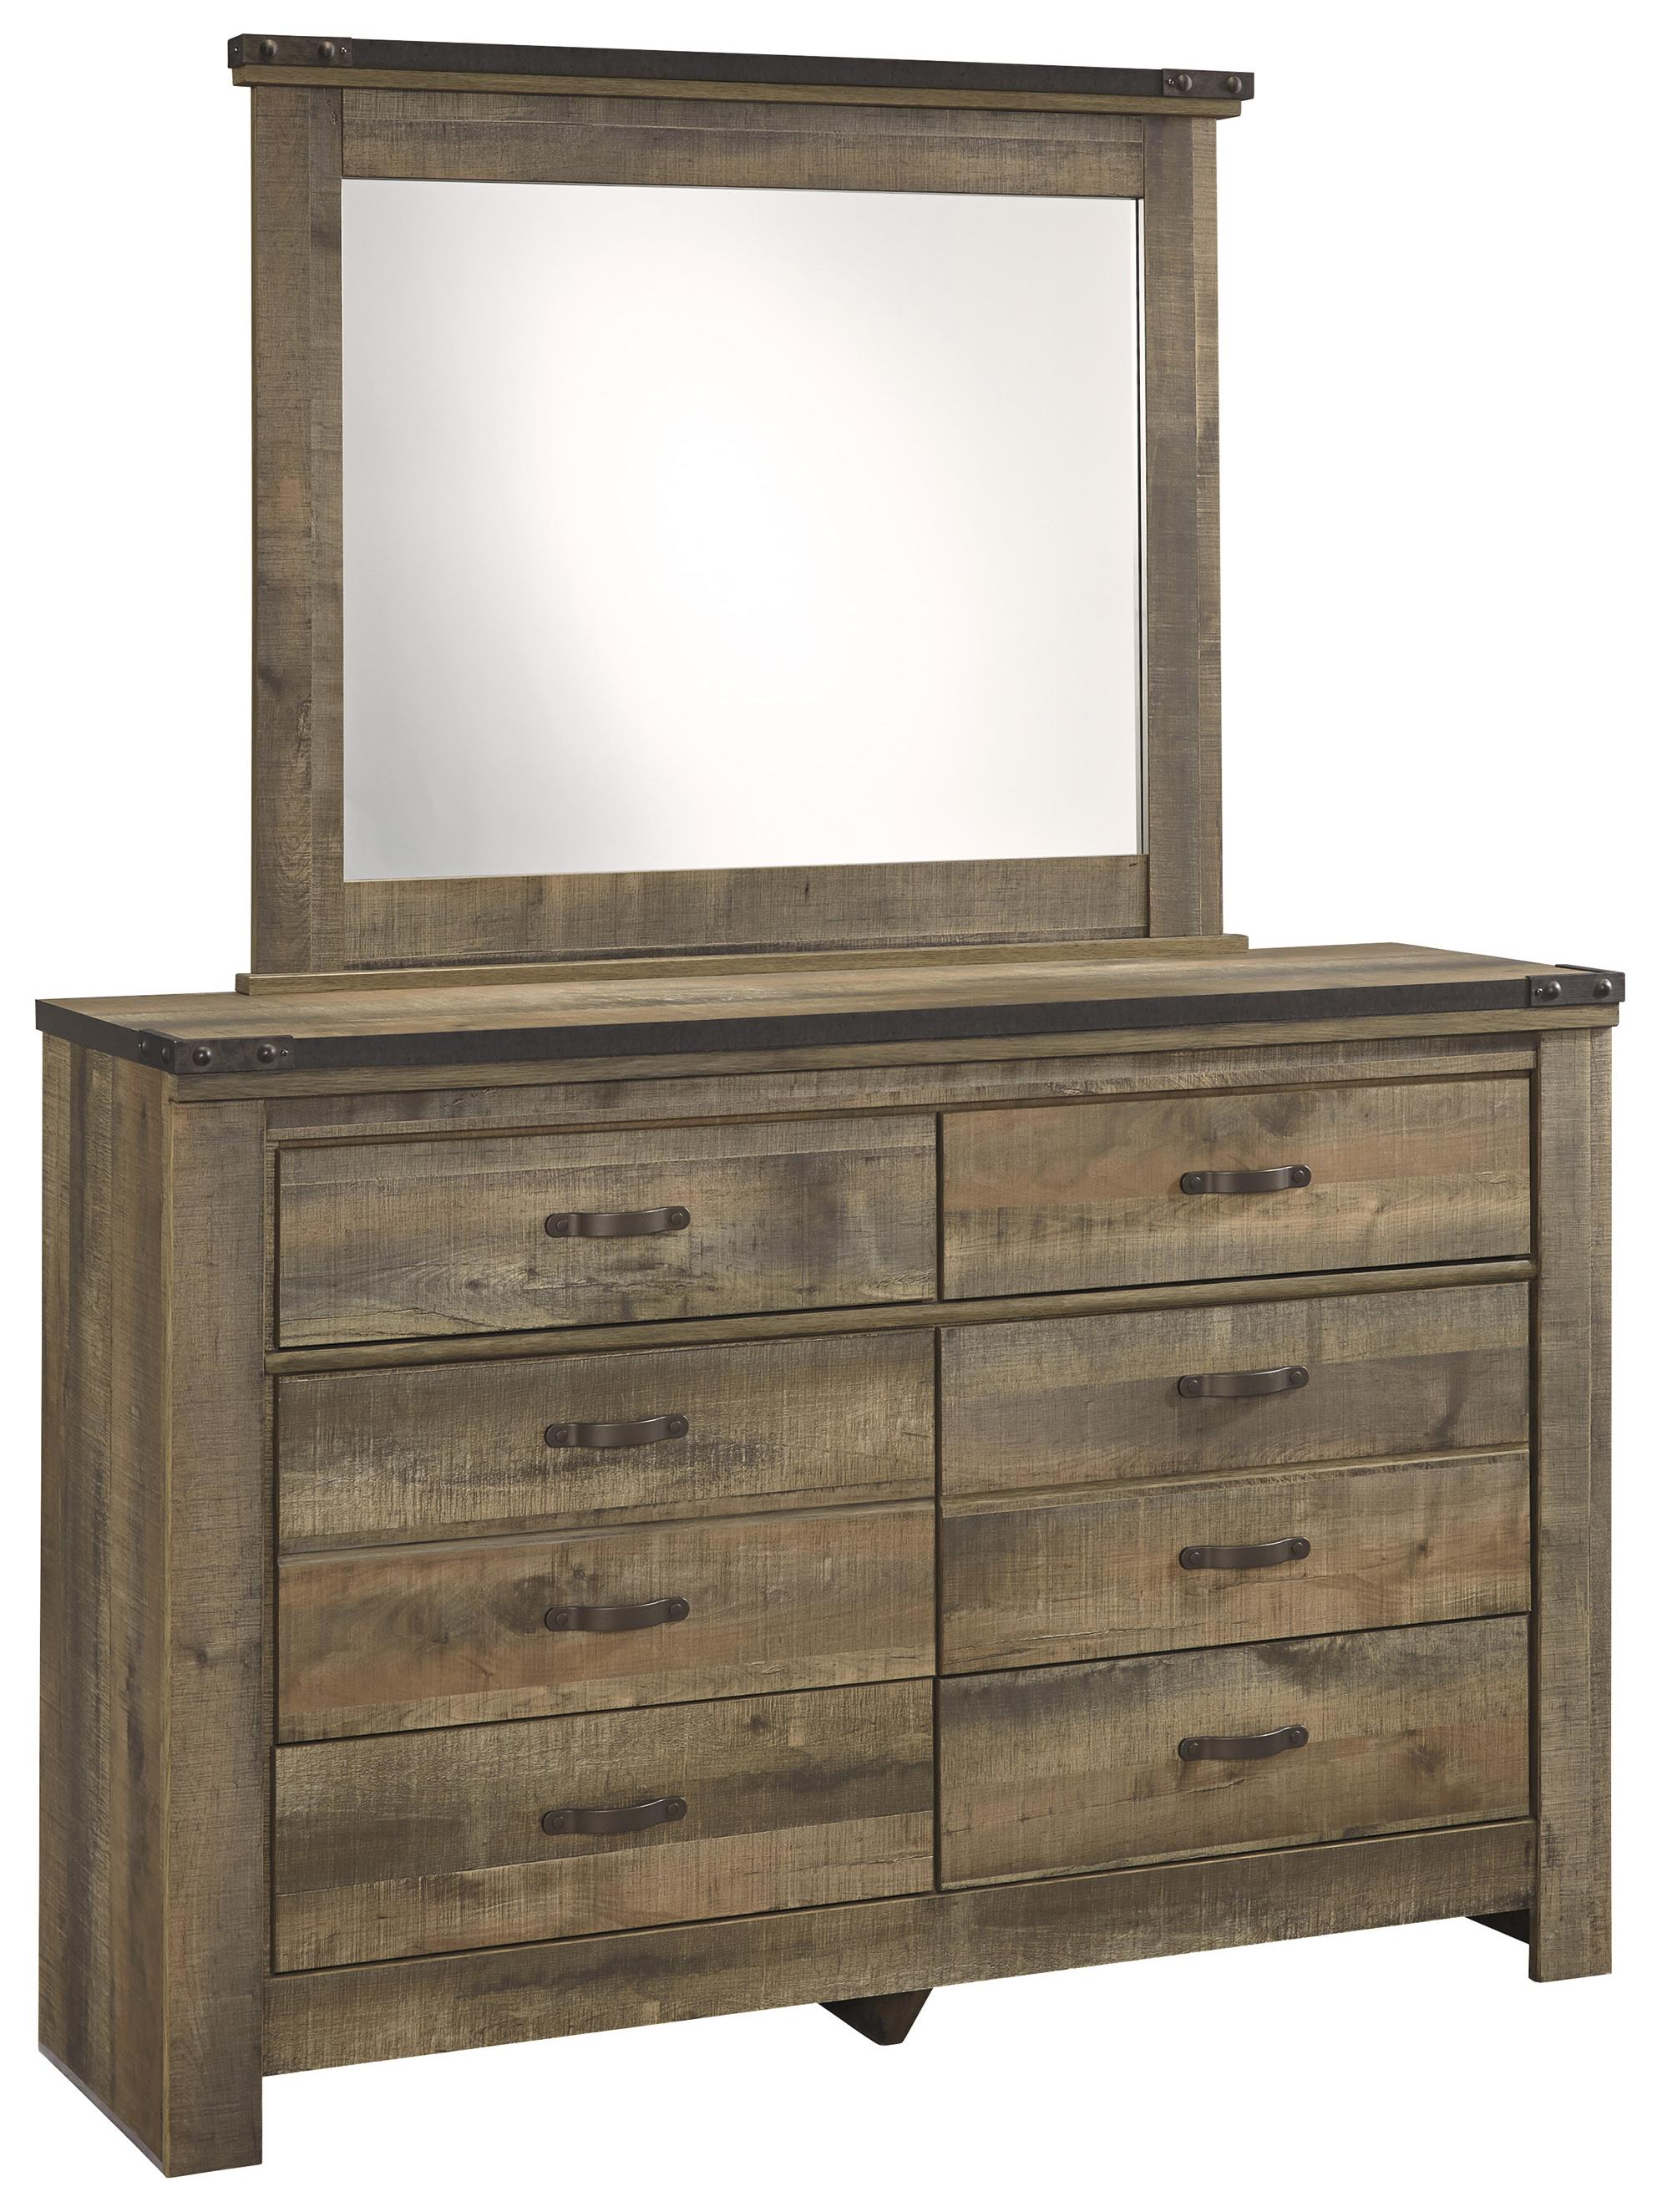 Trinell Youth Dresser & Bedroom Mirror by Signature Design by Ashley at Northeast Factory Direct